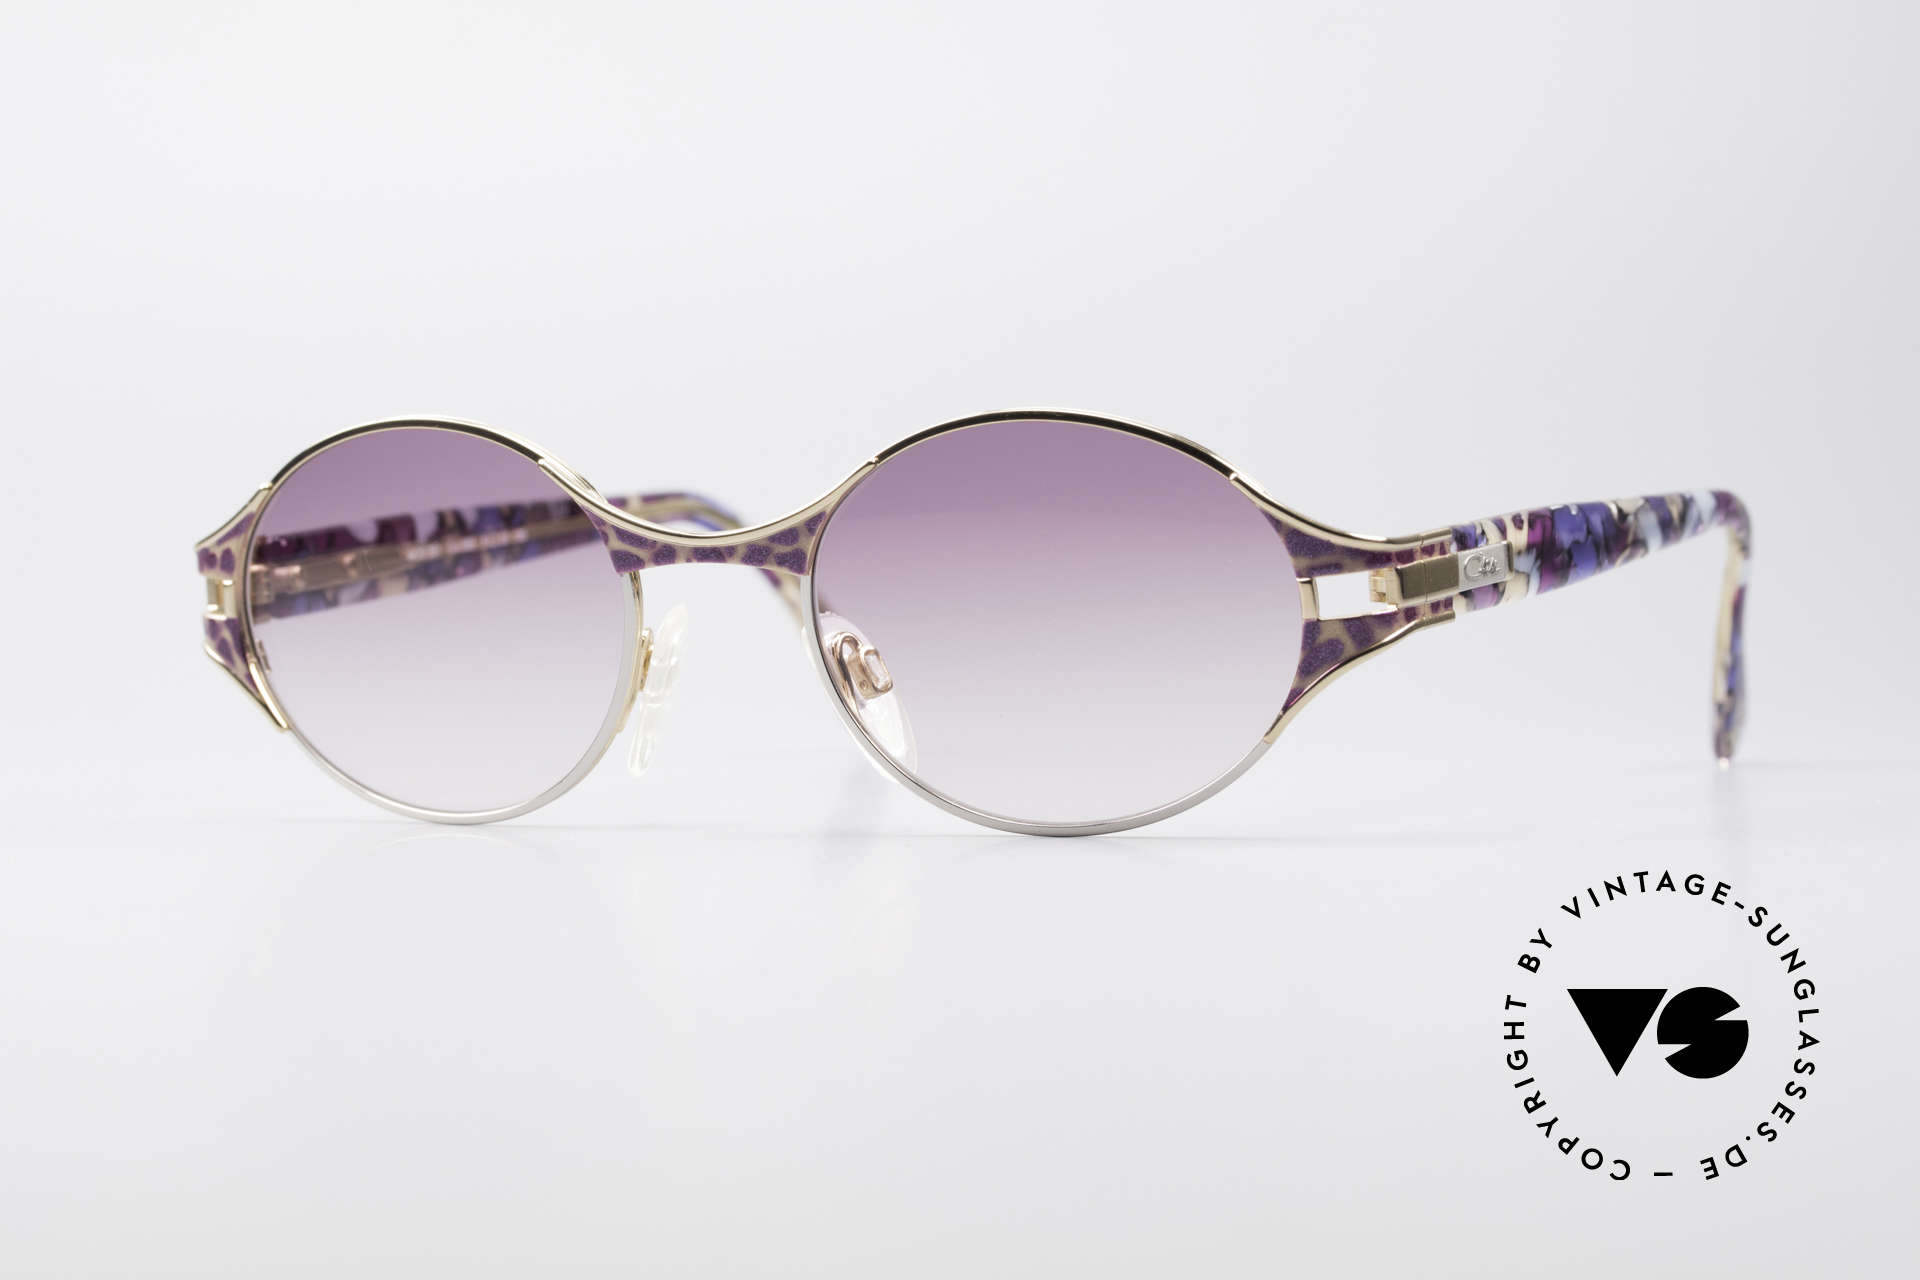 Cazal 281 Oval 90's Vintage Sunglasses, original CAZAL vintage sunglasses of the late 90's, Made for Women